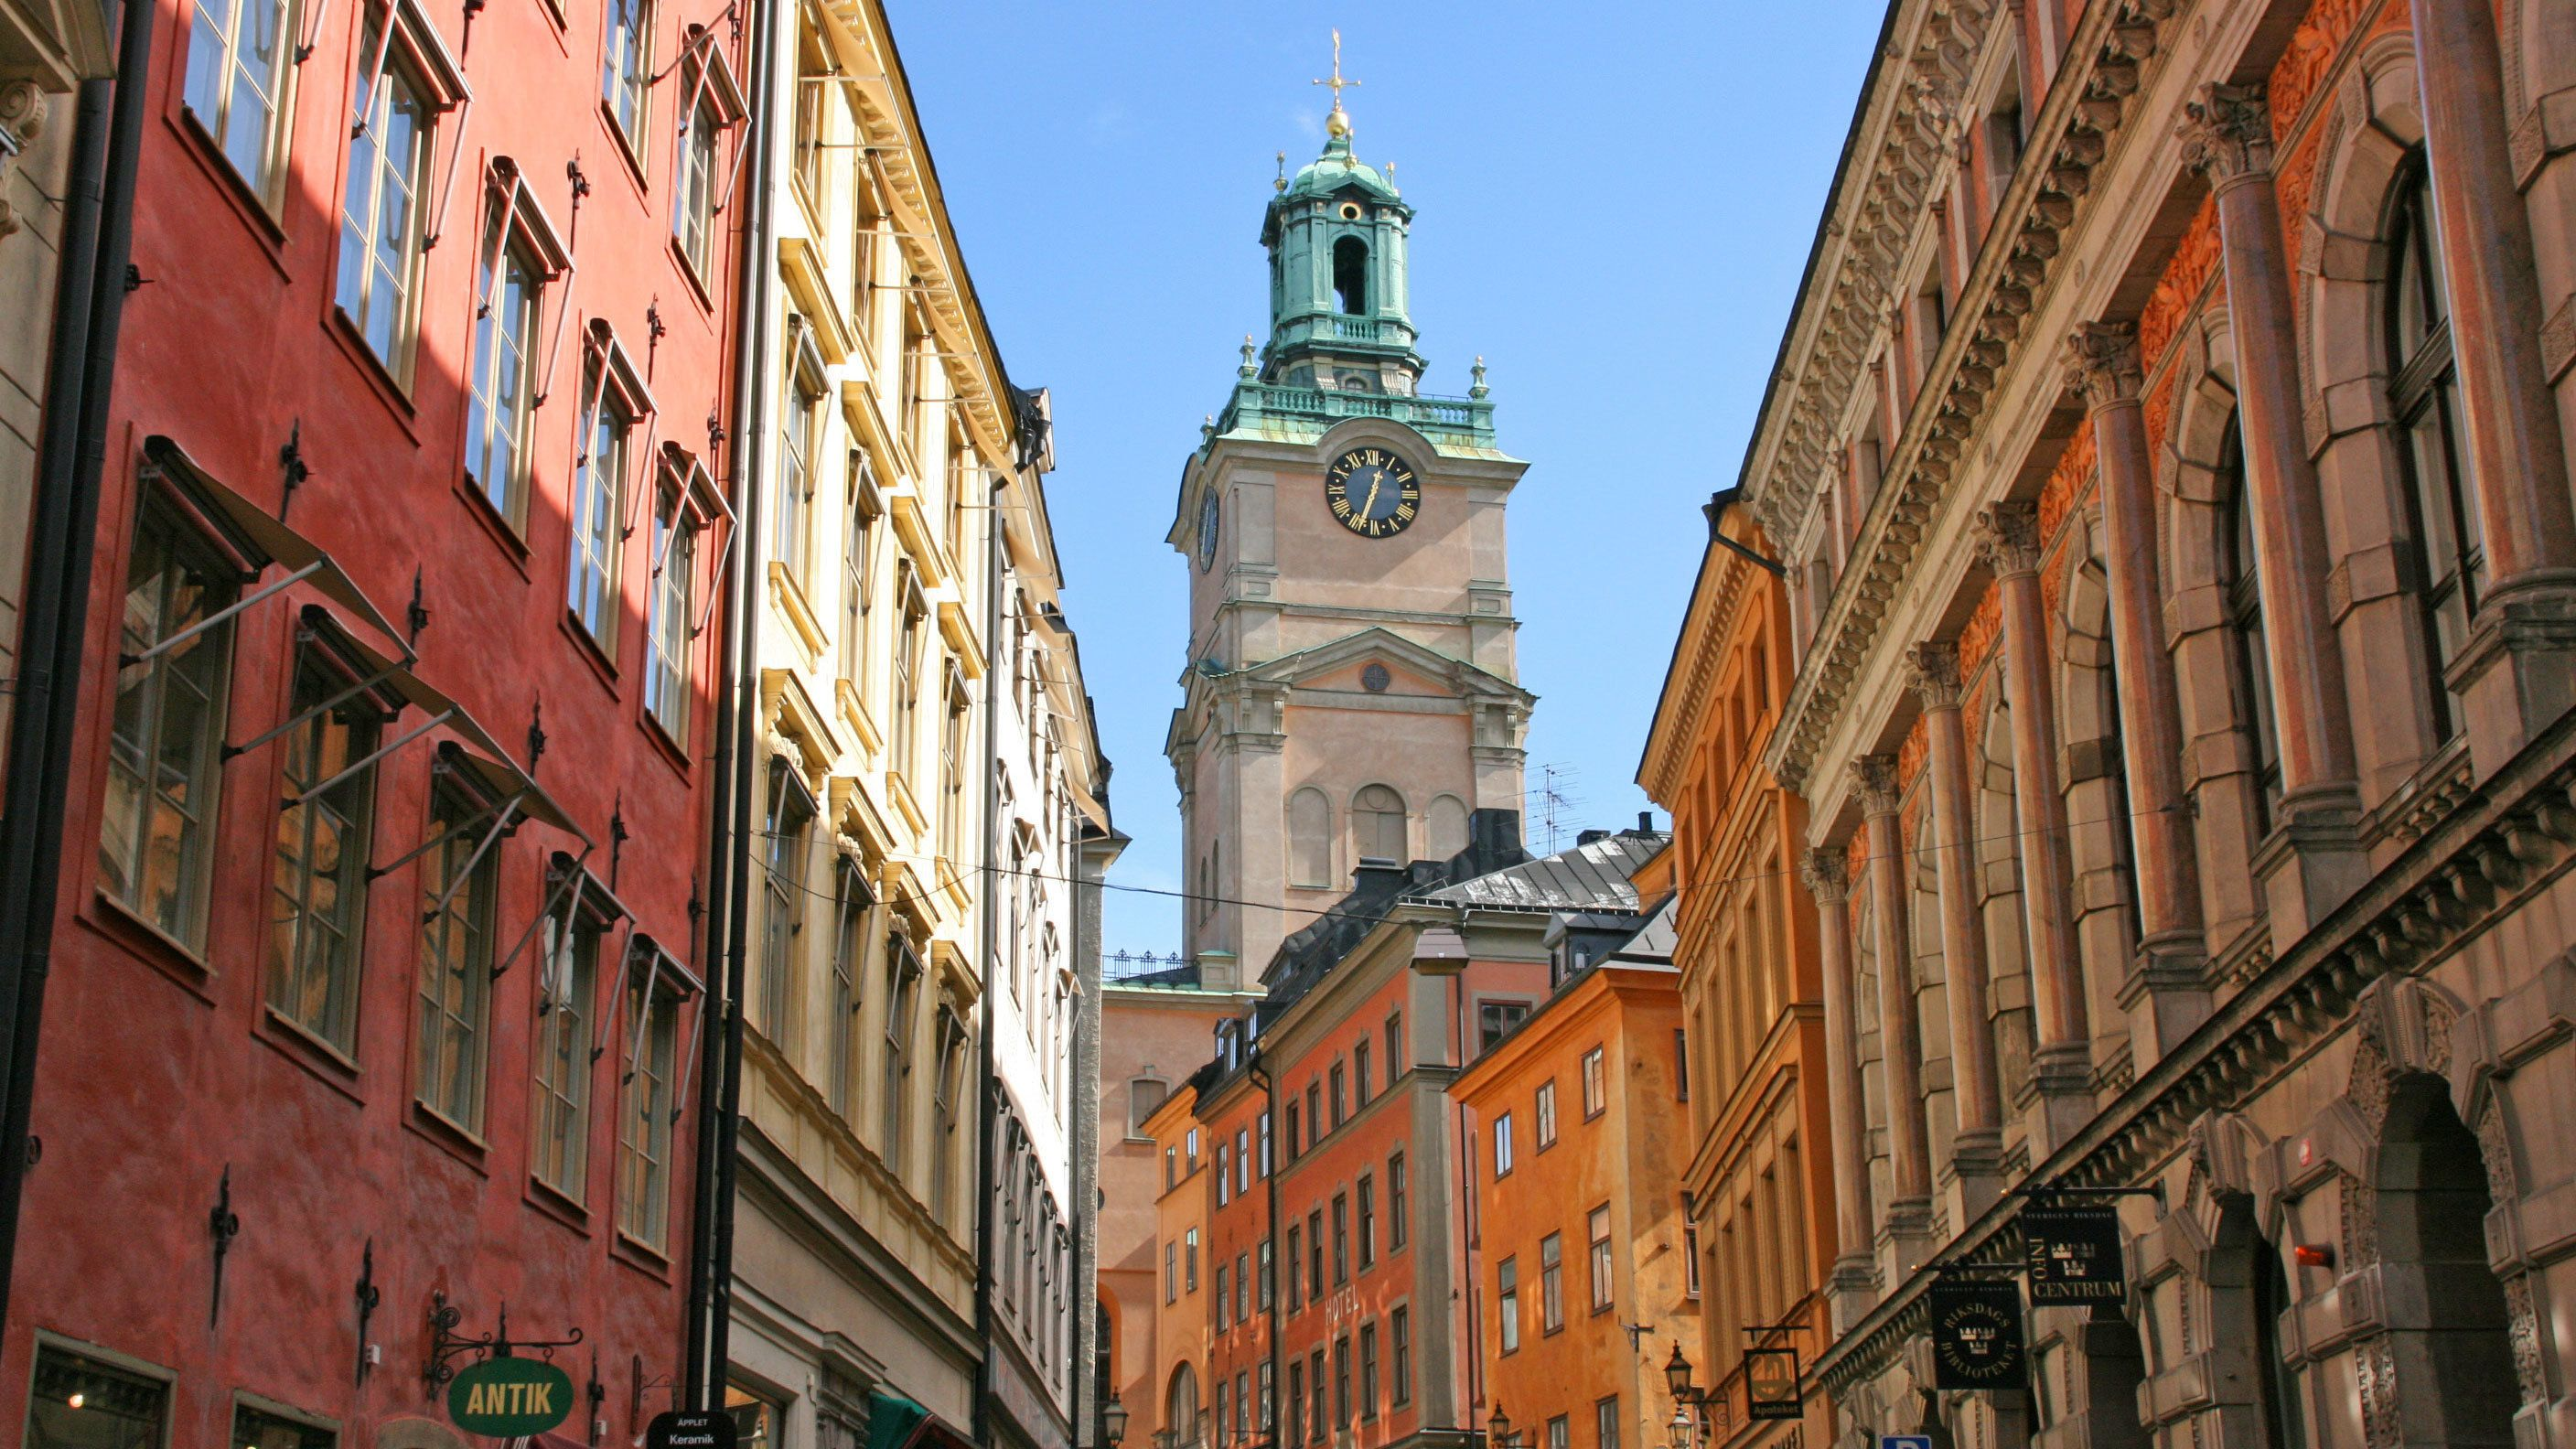 Clock tower and surrounding buildings in Old Town Stockholm